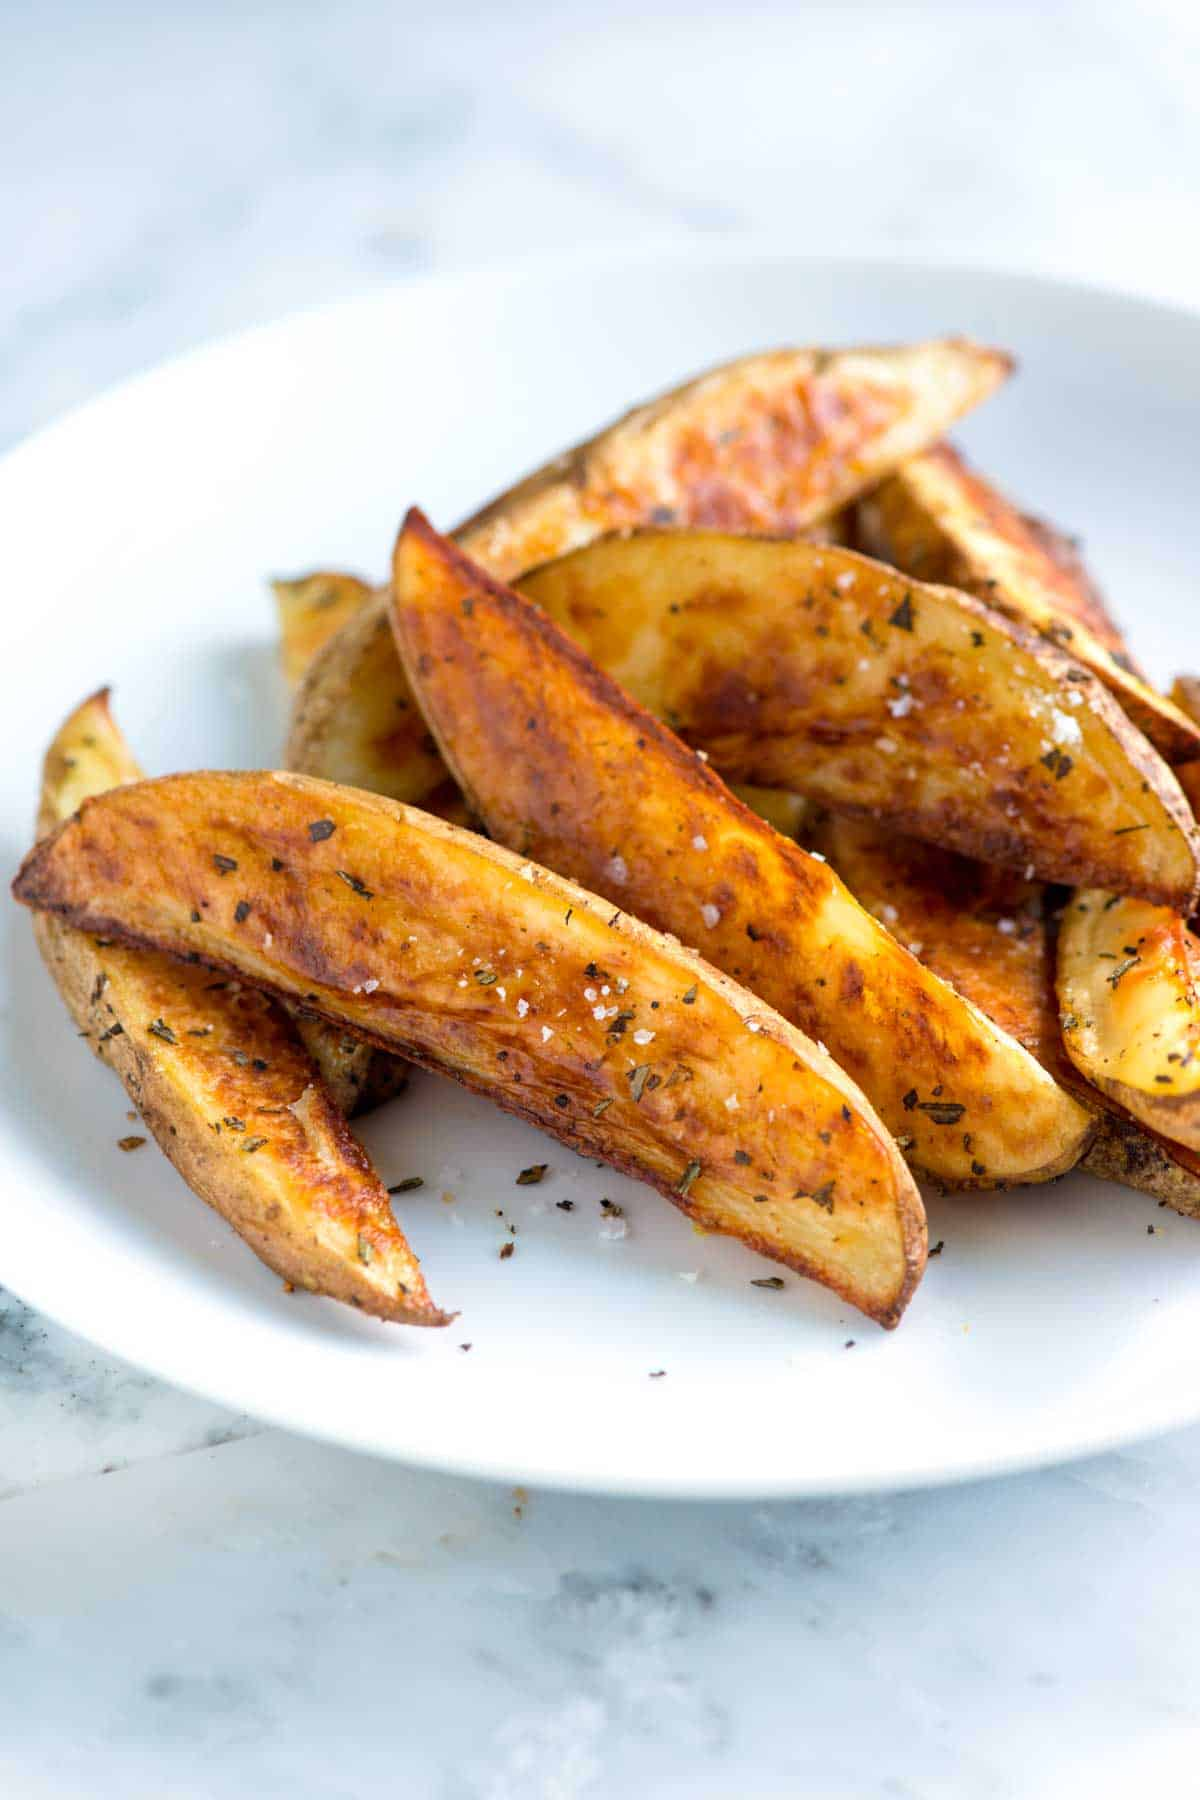 Rosemary Baked Potato Wedges Recipe